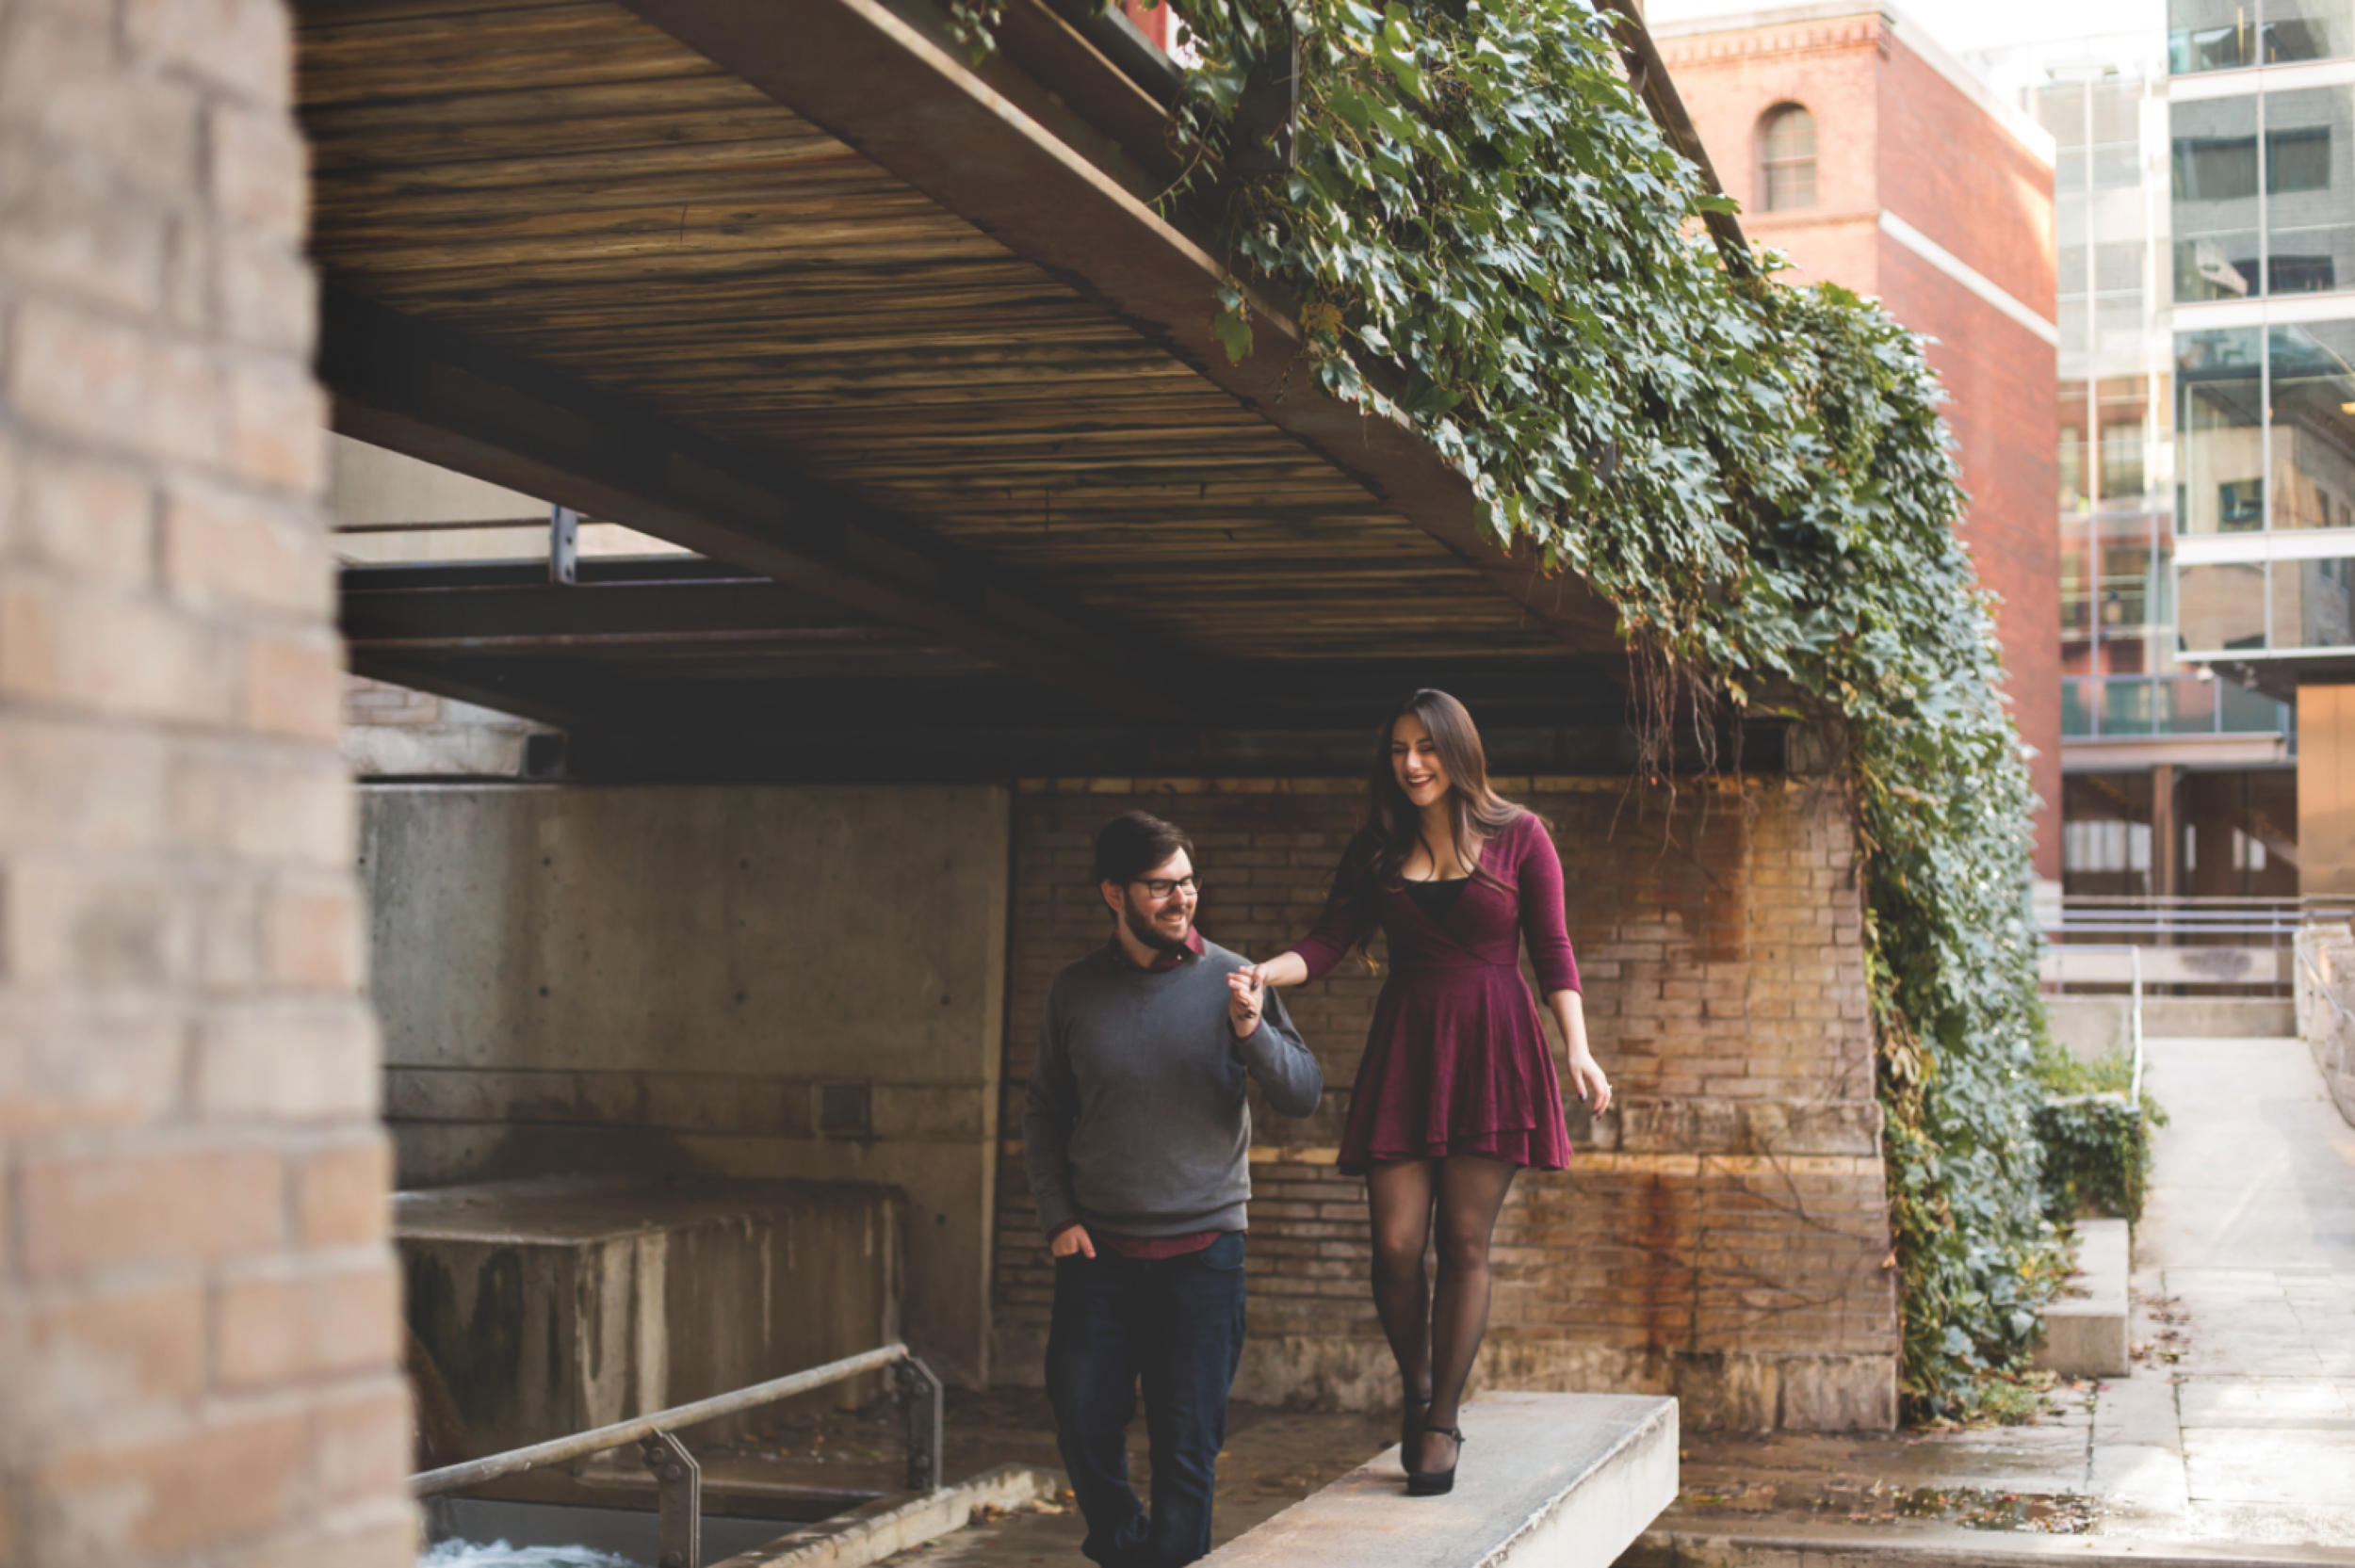 Engagement-Session-Hamilton-Burlington-Oakville-Niagara-Toronto-Wedding-Photographer-Engaged-Photography-Urban-Engaged-Downtown-Golden-Hour-Moments-by-Lauren-Photo-Image-12.png